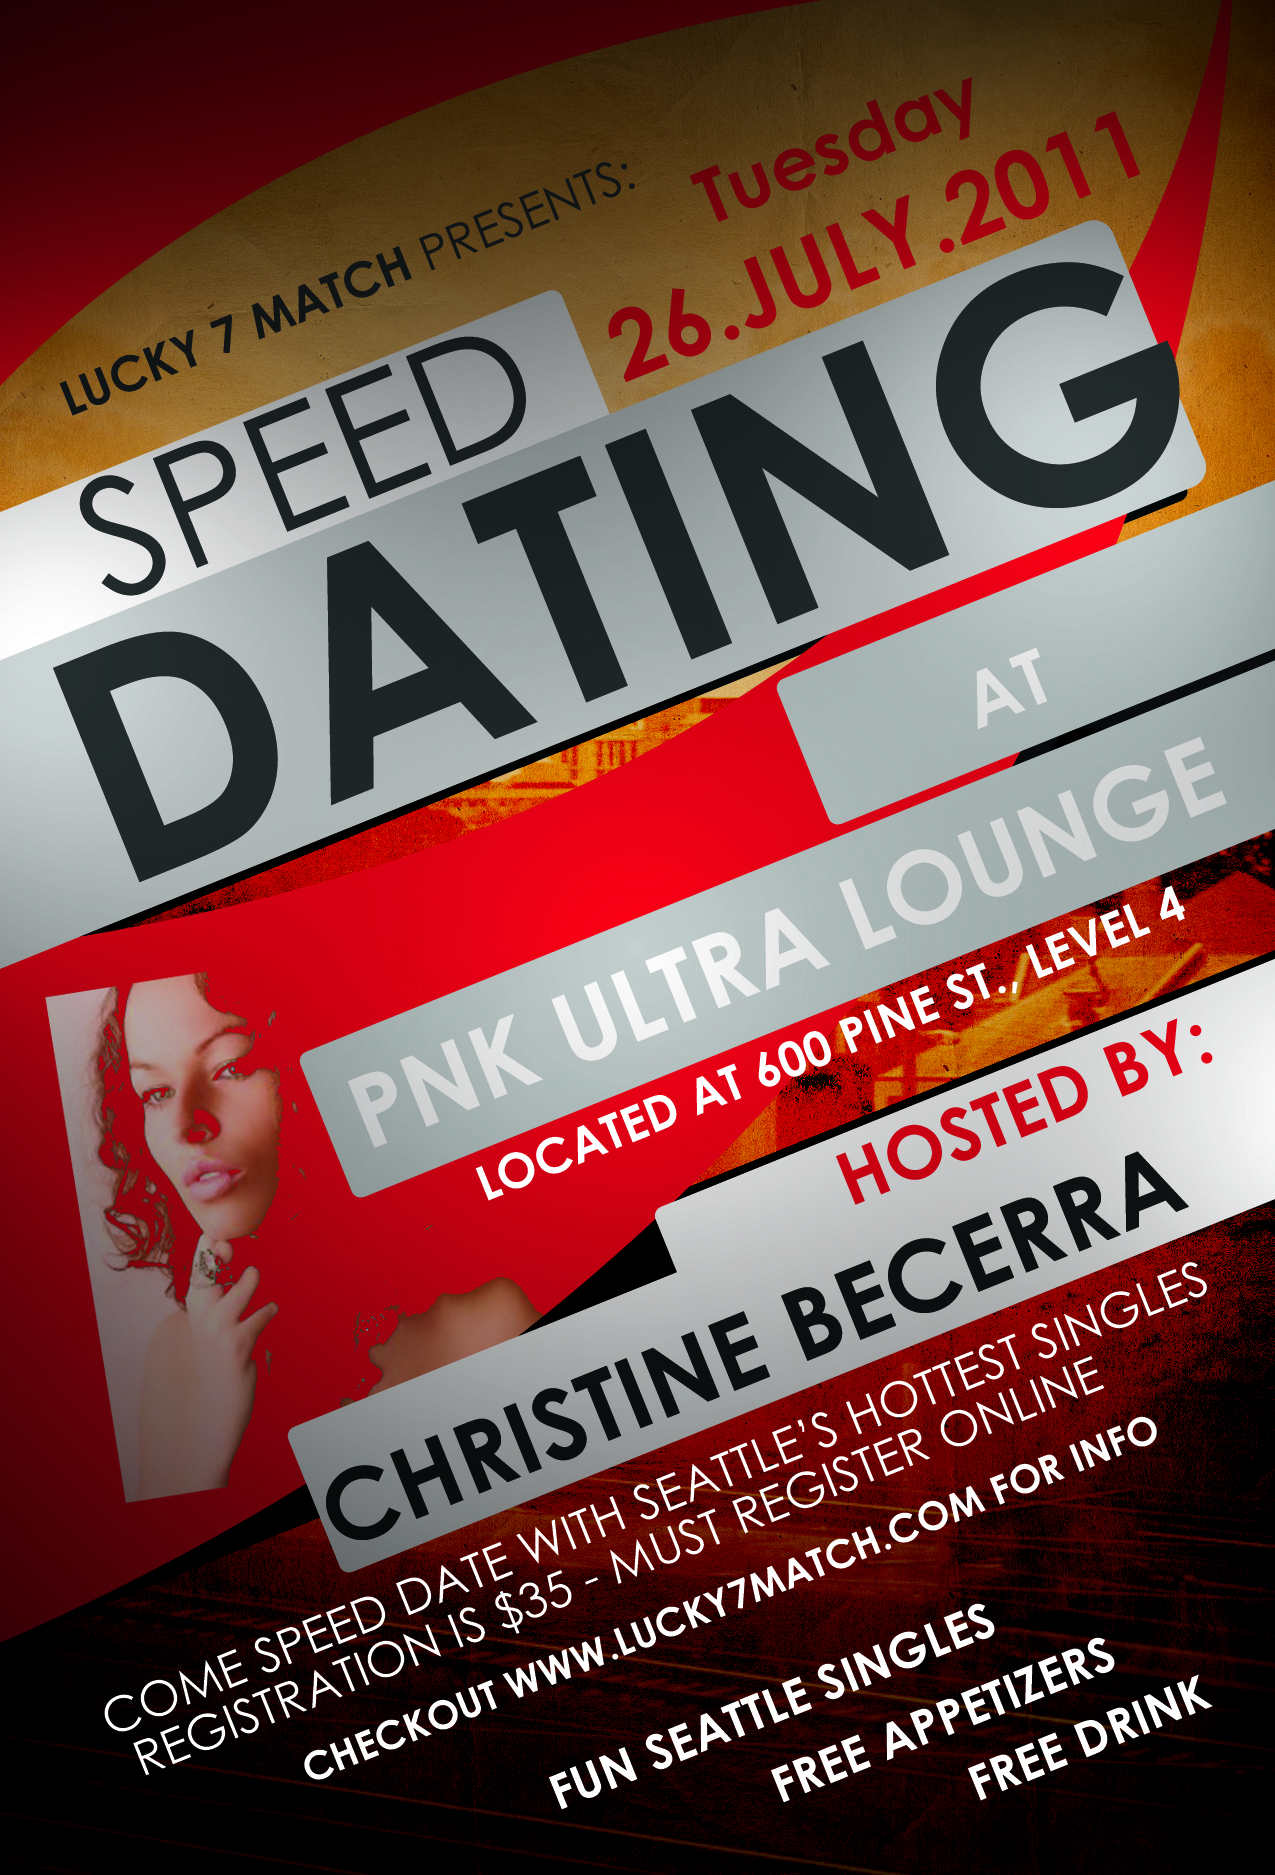 Speed dating orlando events